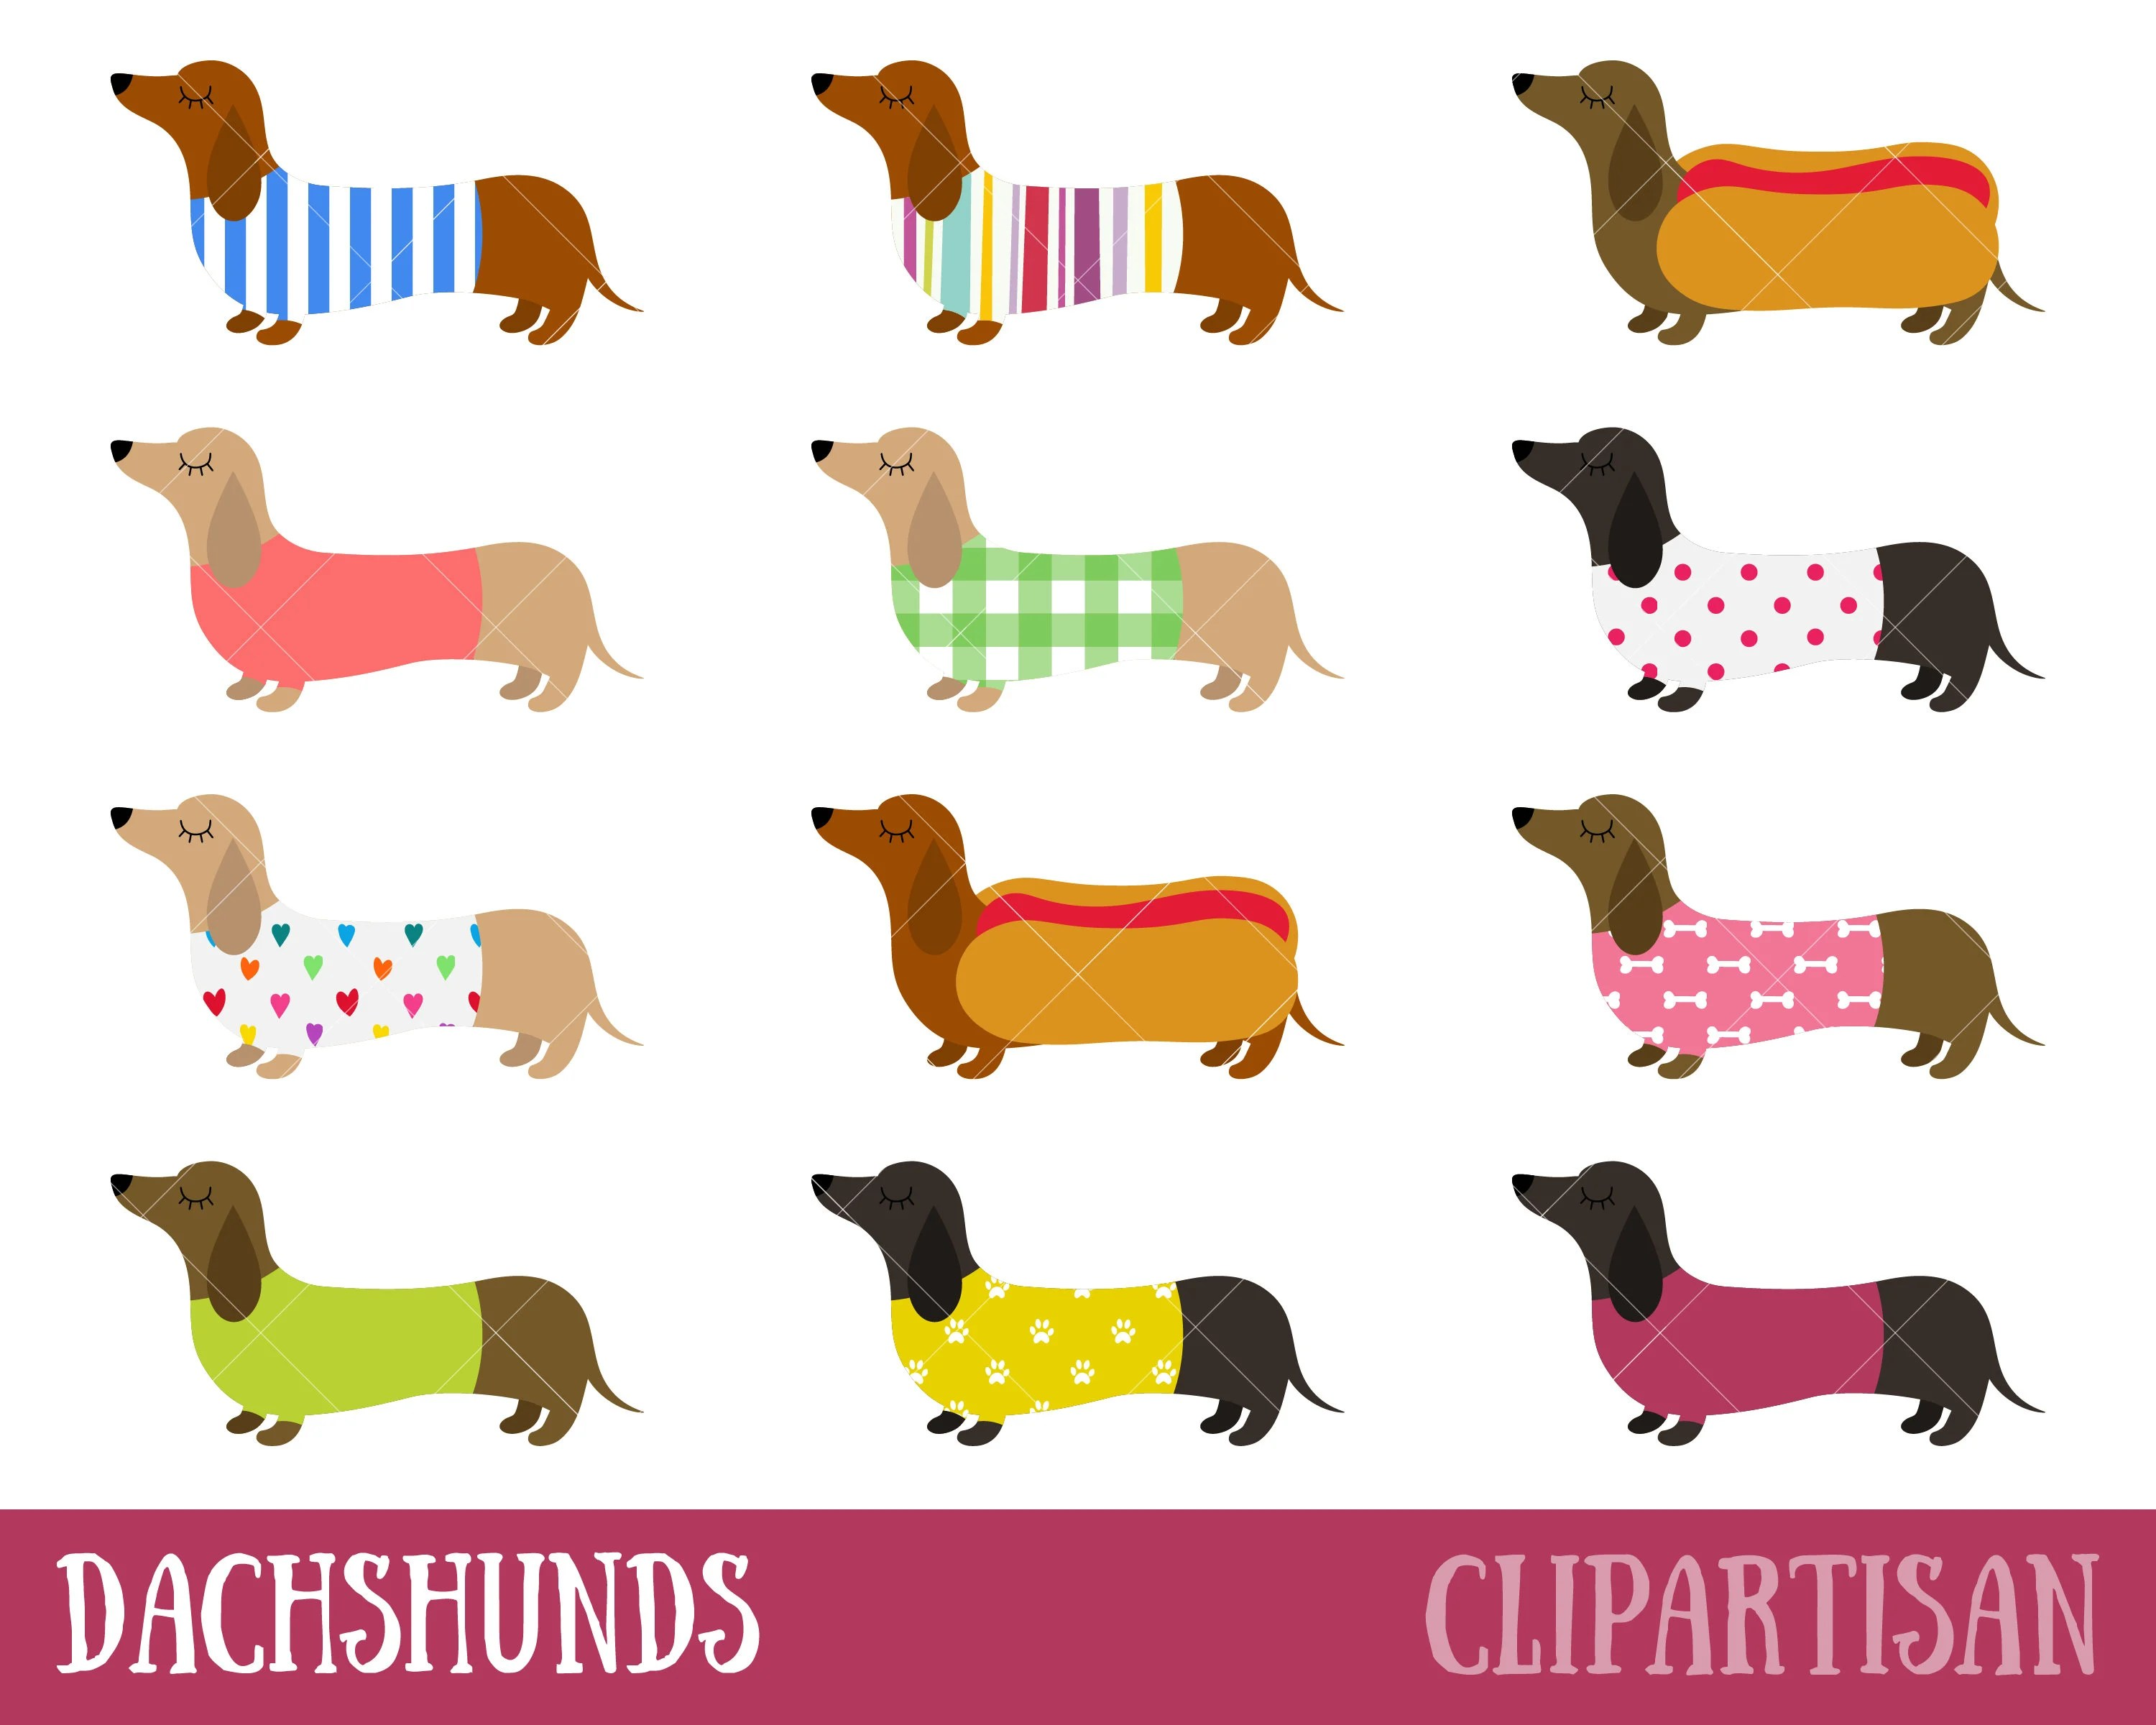 dachshunds clipart sausage dogs